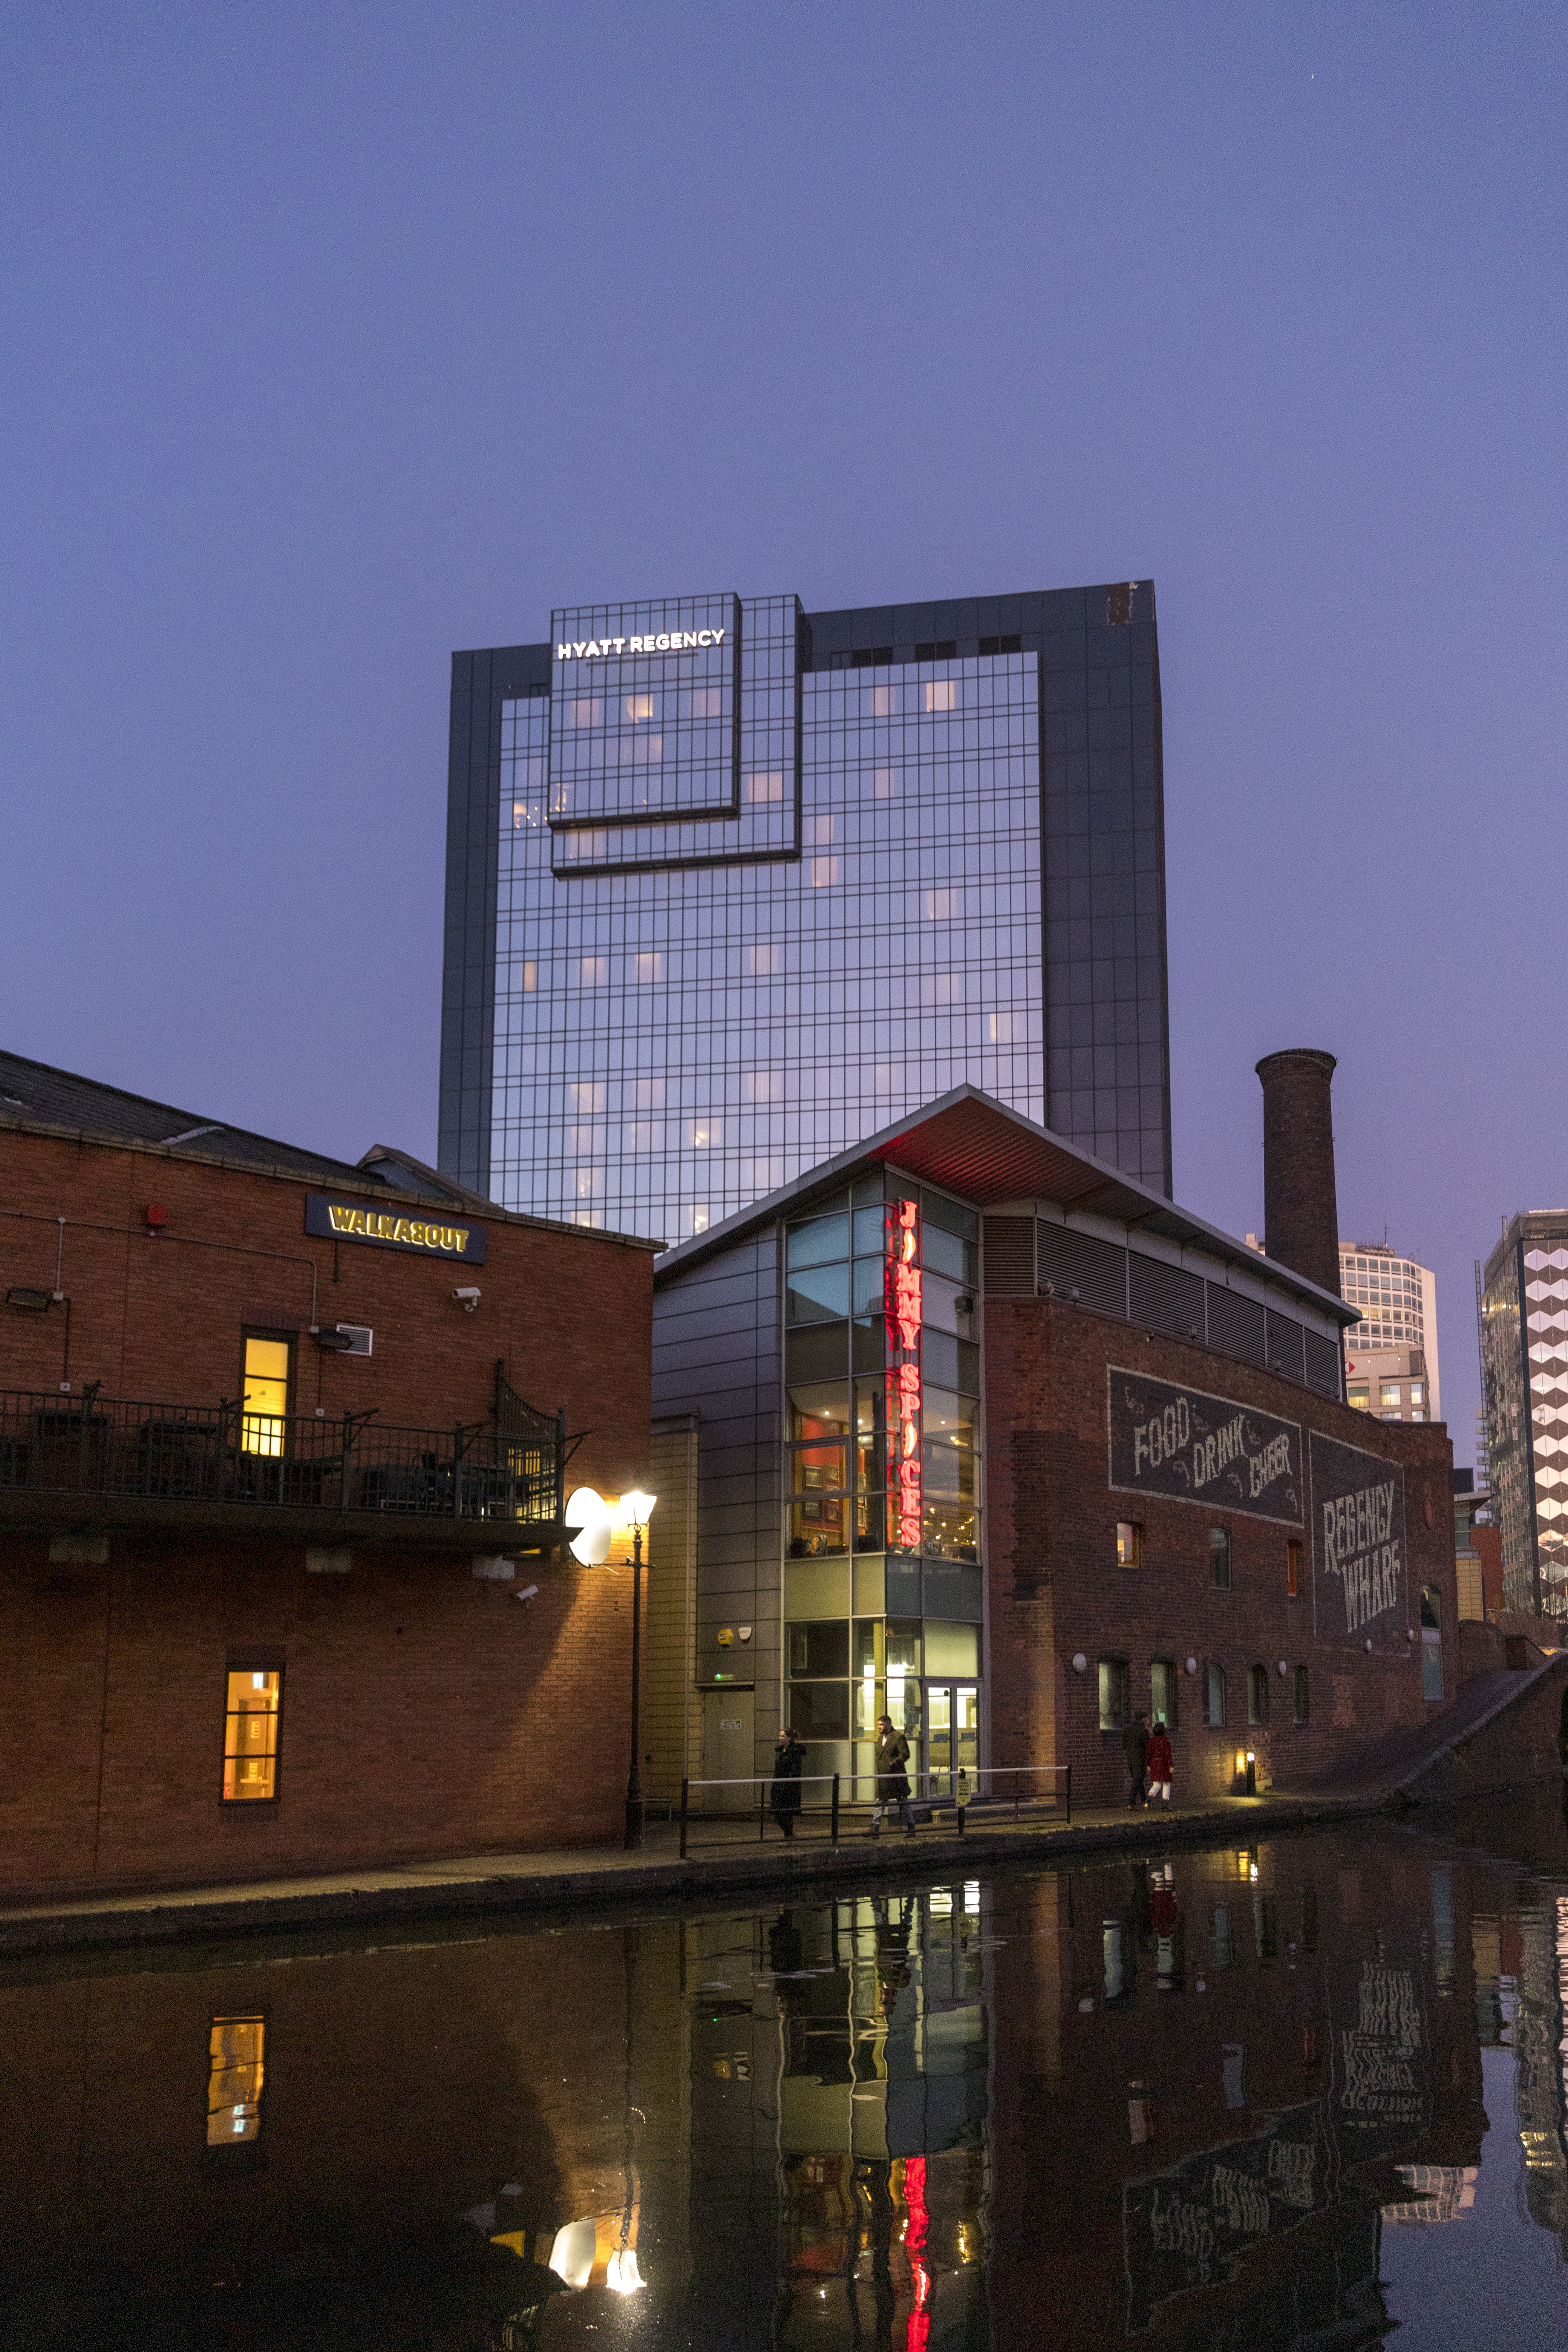 2020 - Hyatt Regency from Gas Street Basin, Birmingham.